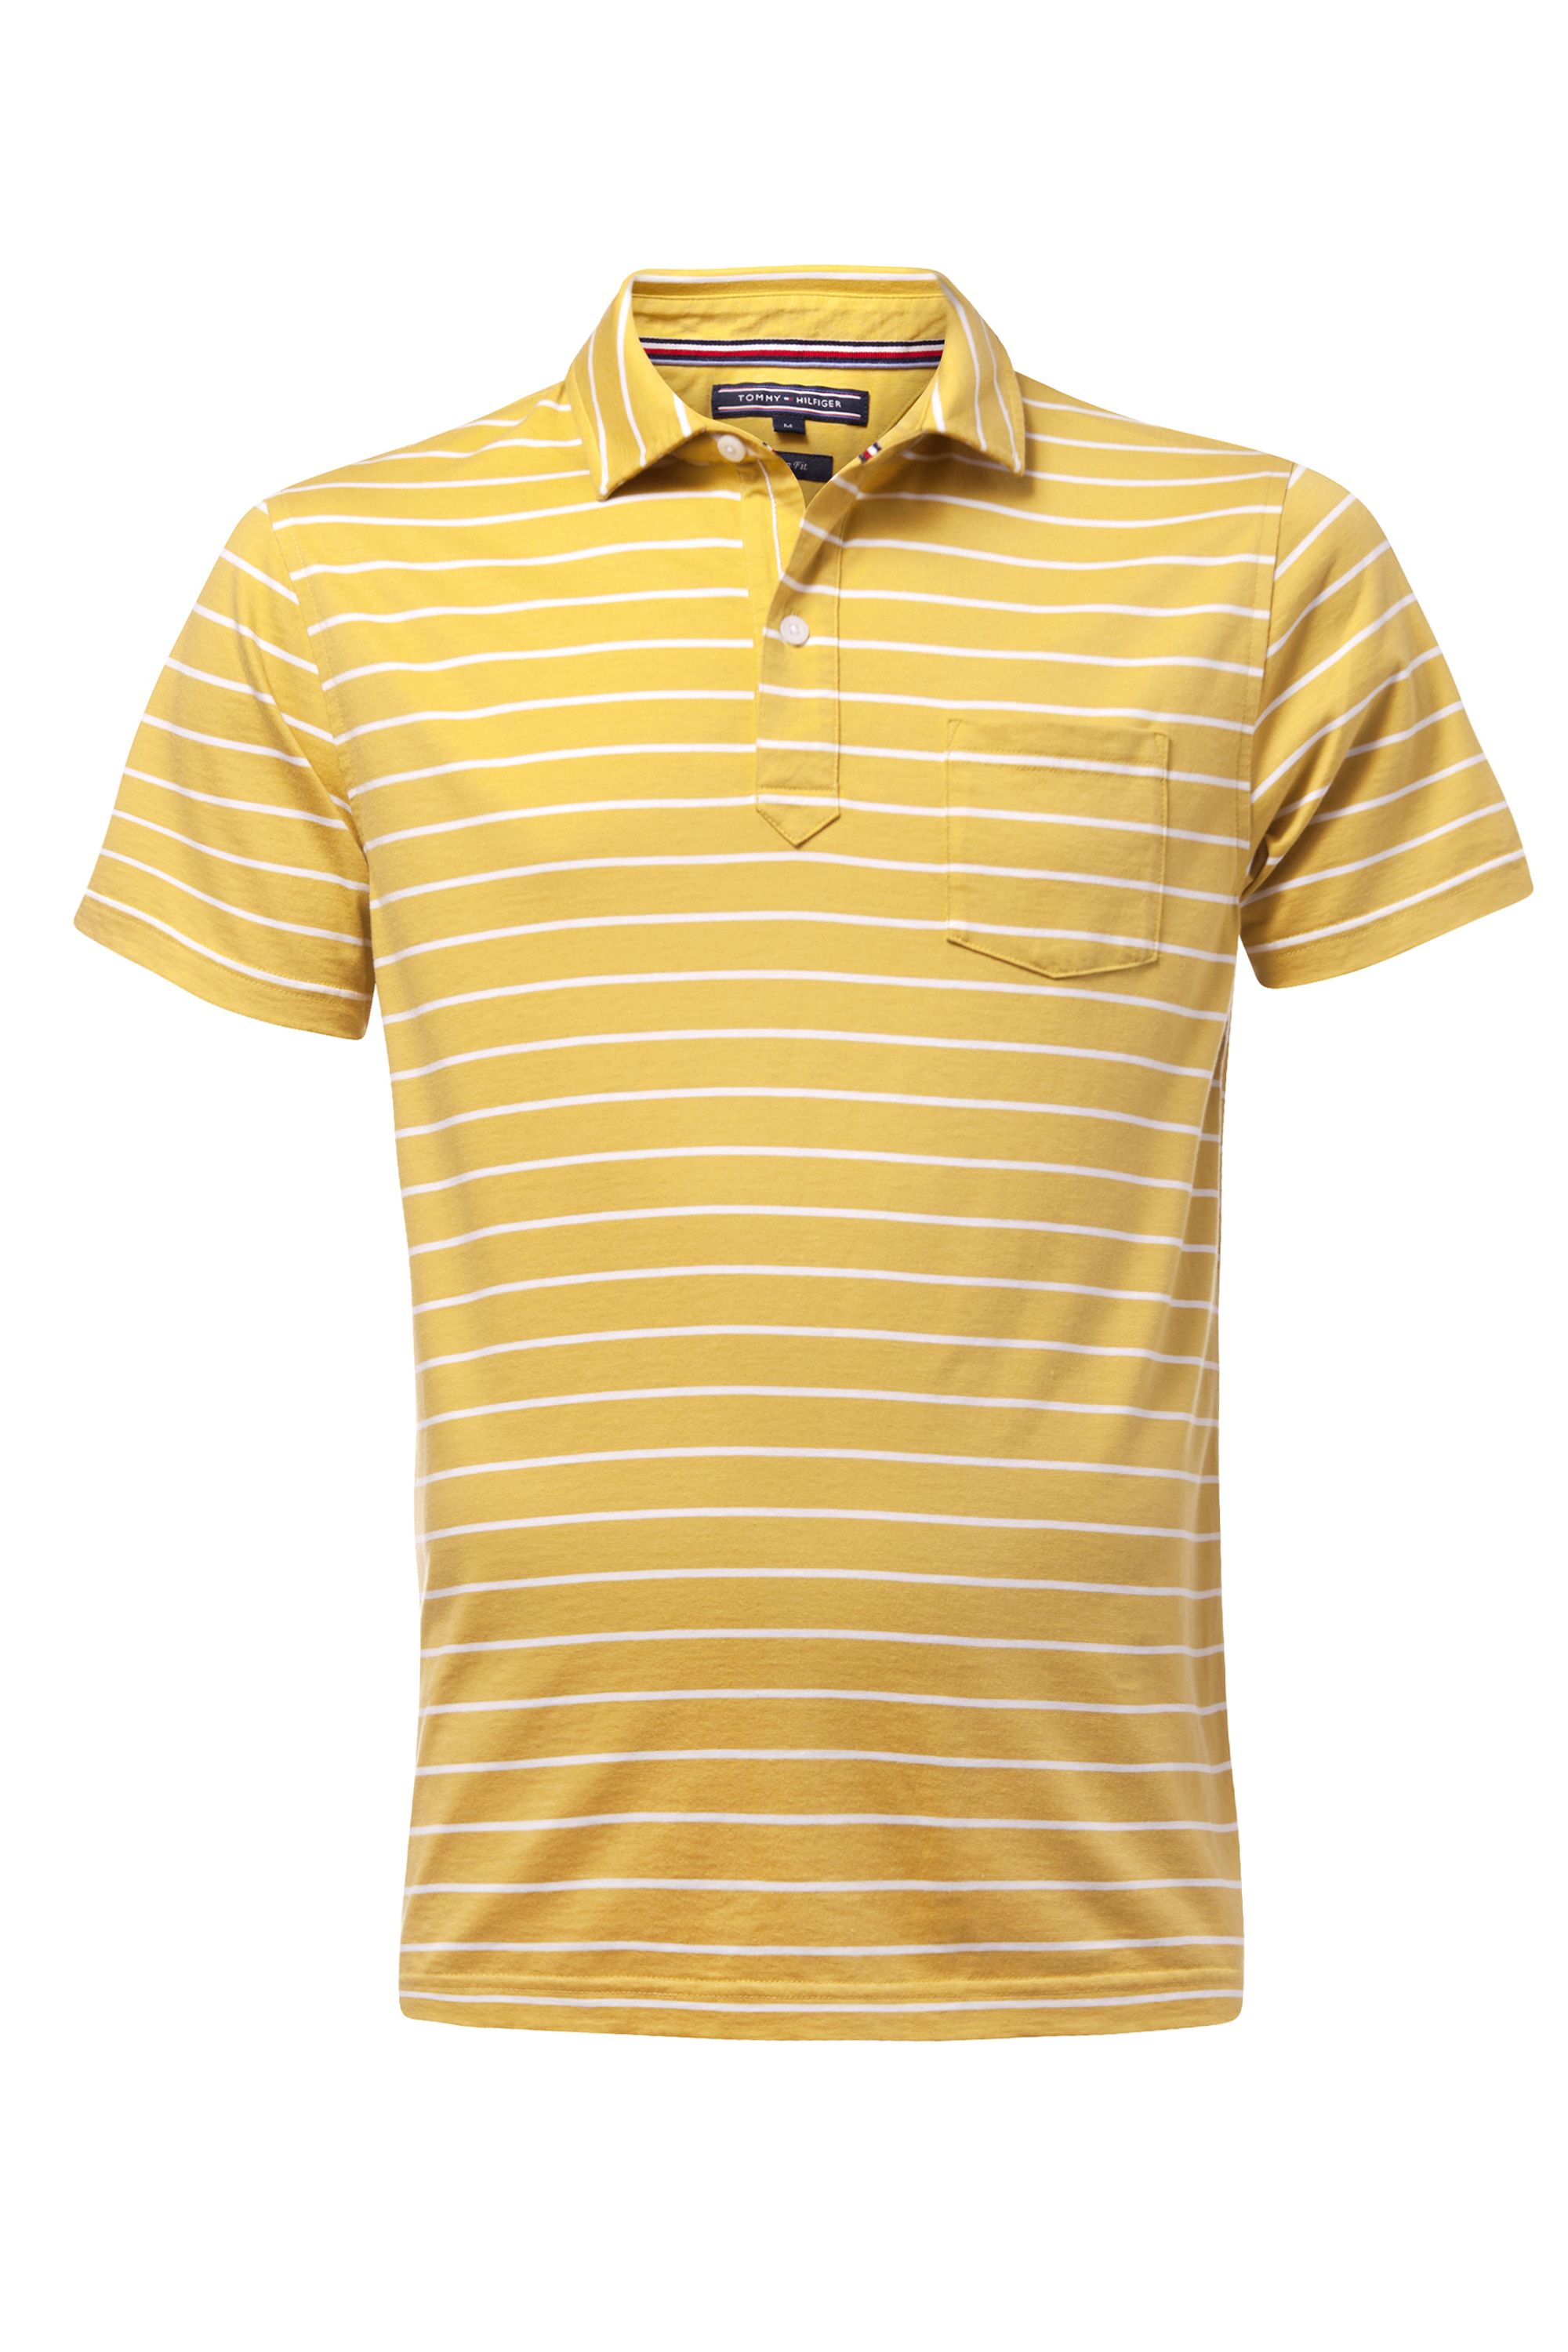 Men's Tommy Hilfiger Bessy stripe polo top, Yellow